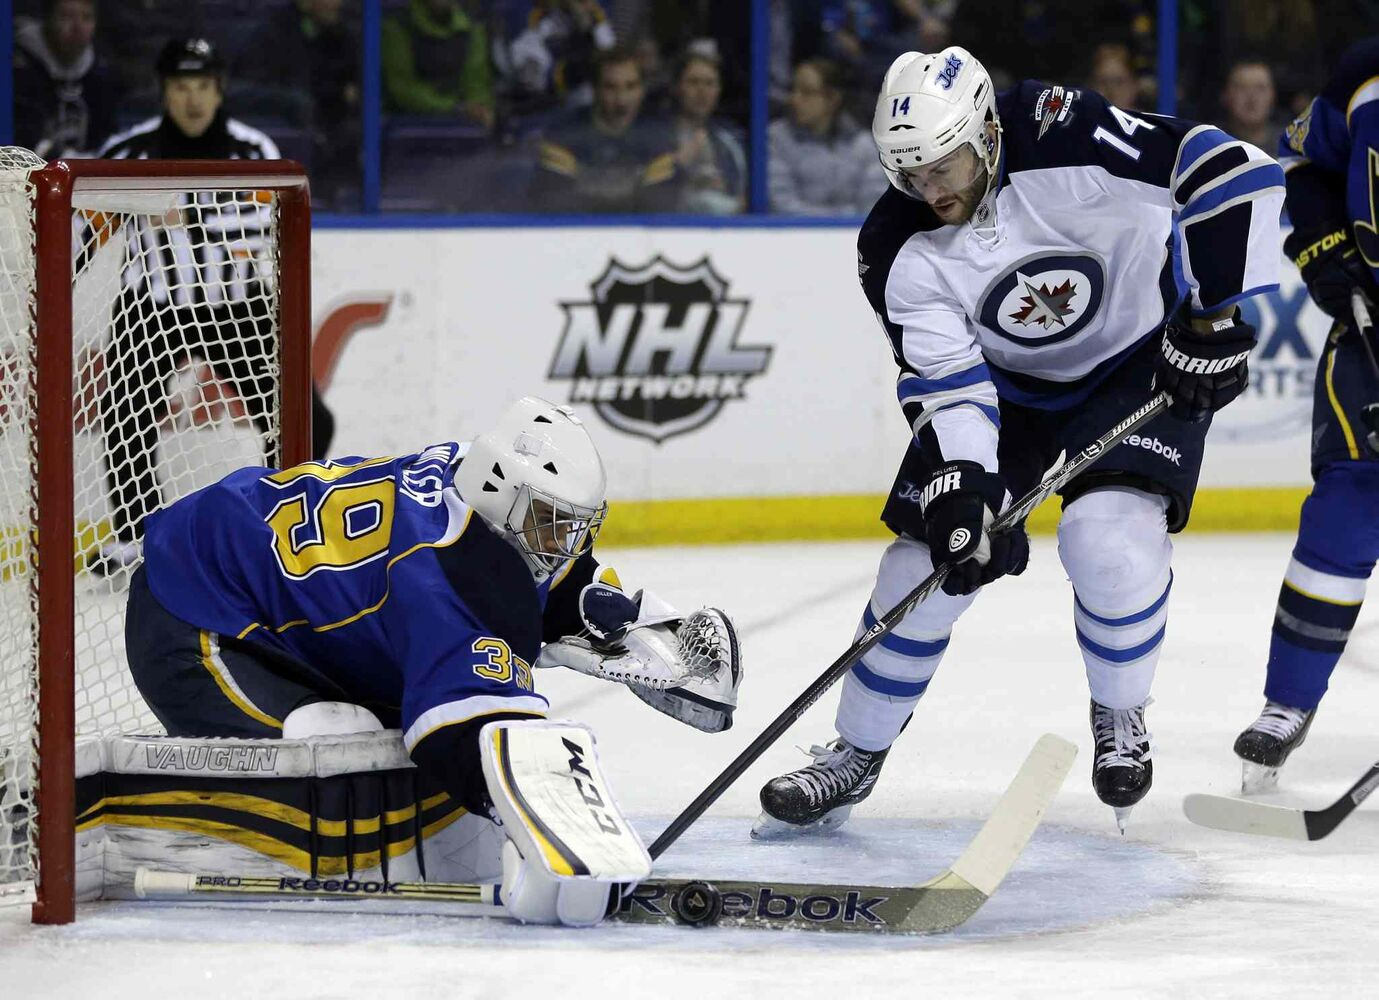 St. Louis Blues goalie Ryan Miller deflects a shot from Winnipeg Jets forward Anthony Peluso during the first period of an NHL game at the Scottrade Center in St. Louis Monday. (JEFF ROBERSON / THE ASSOCIATED PRESS)